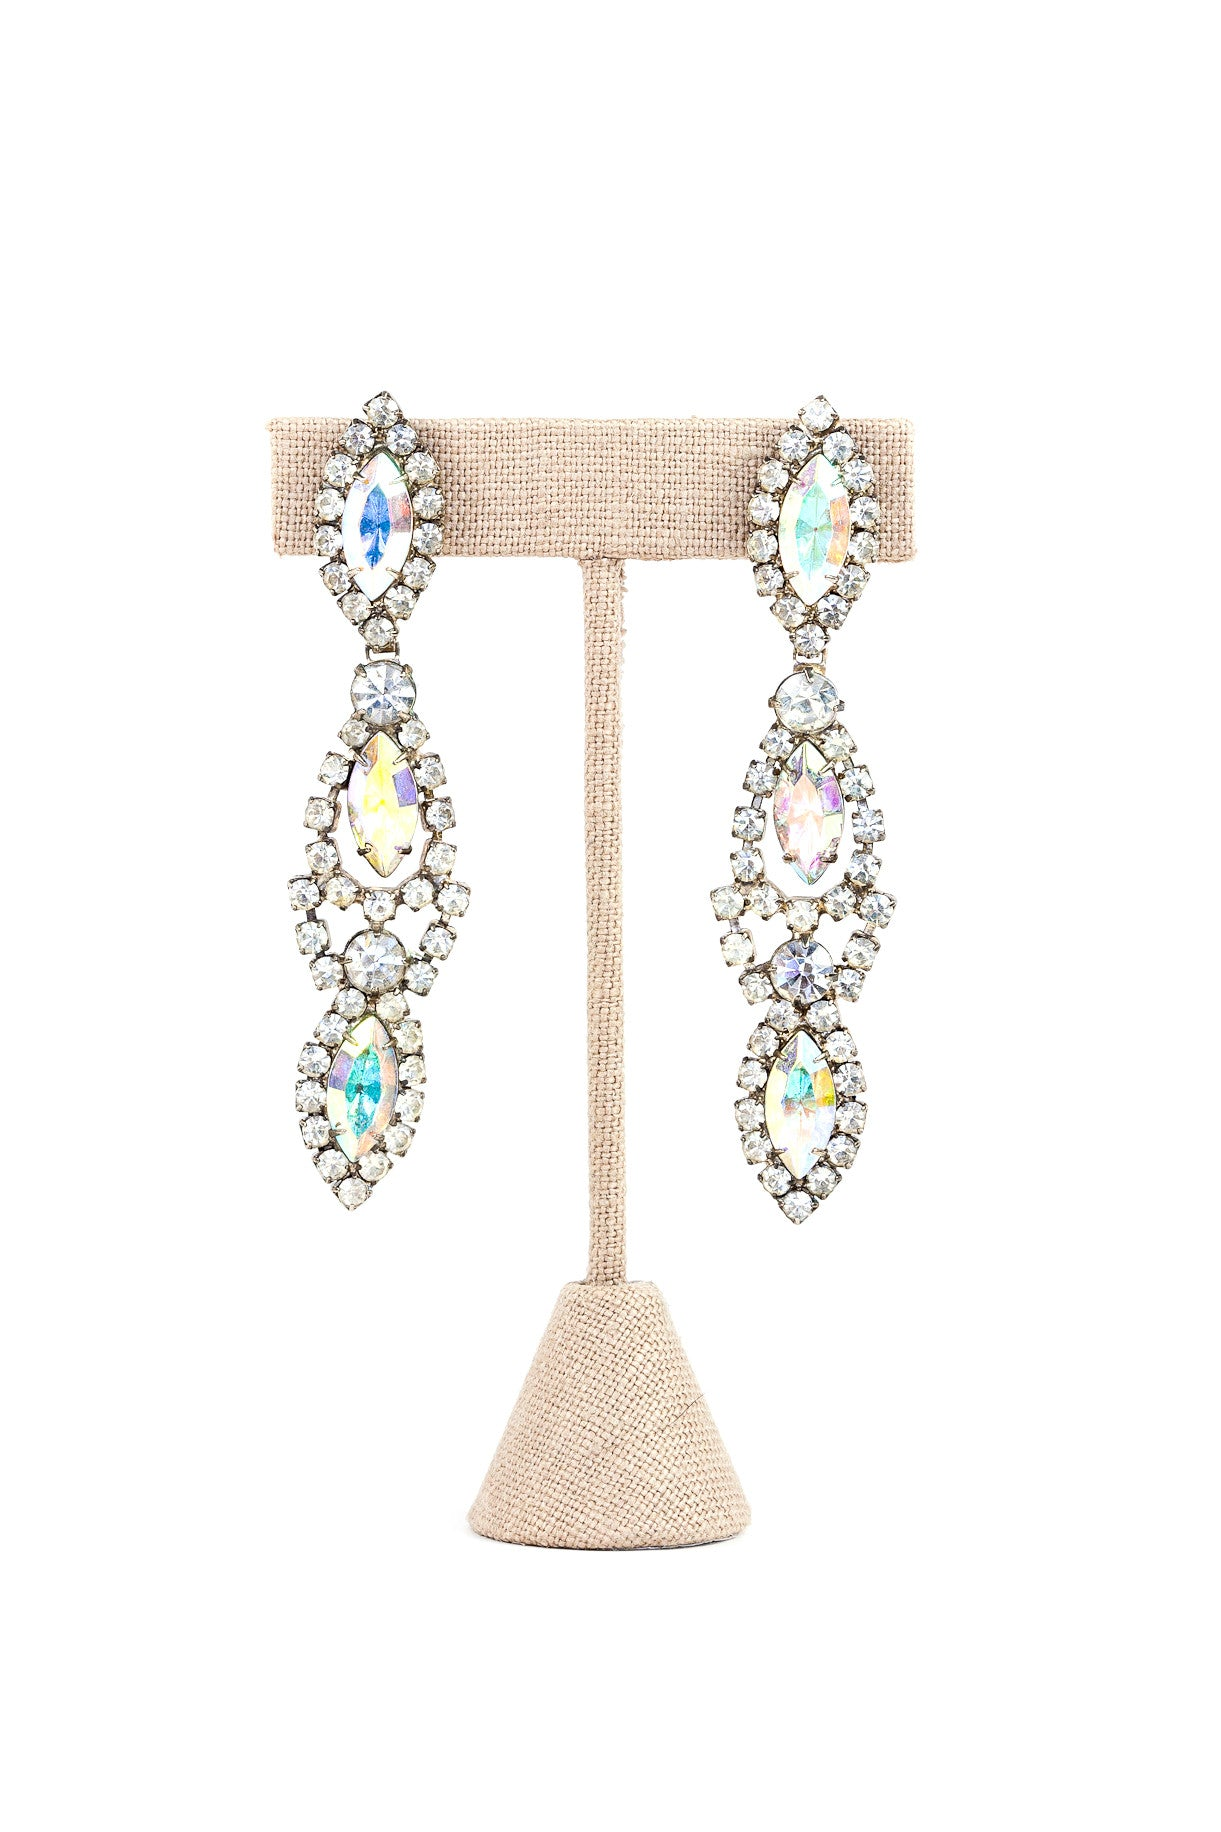 80's__Vintage__Rhinestone Drop Earrings